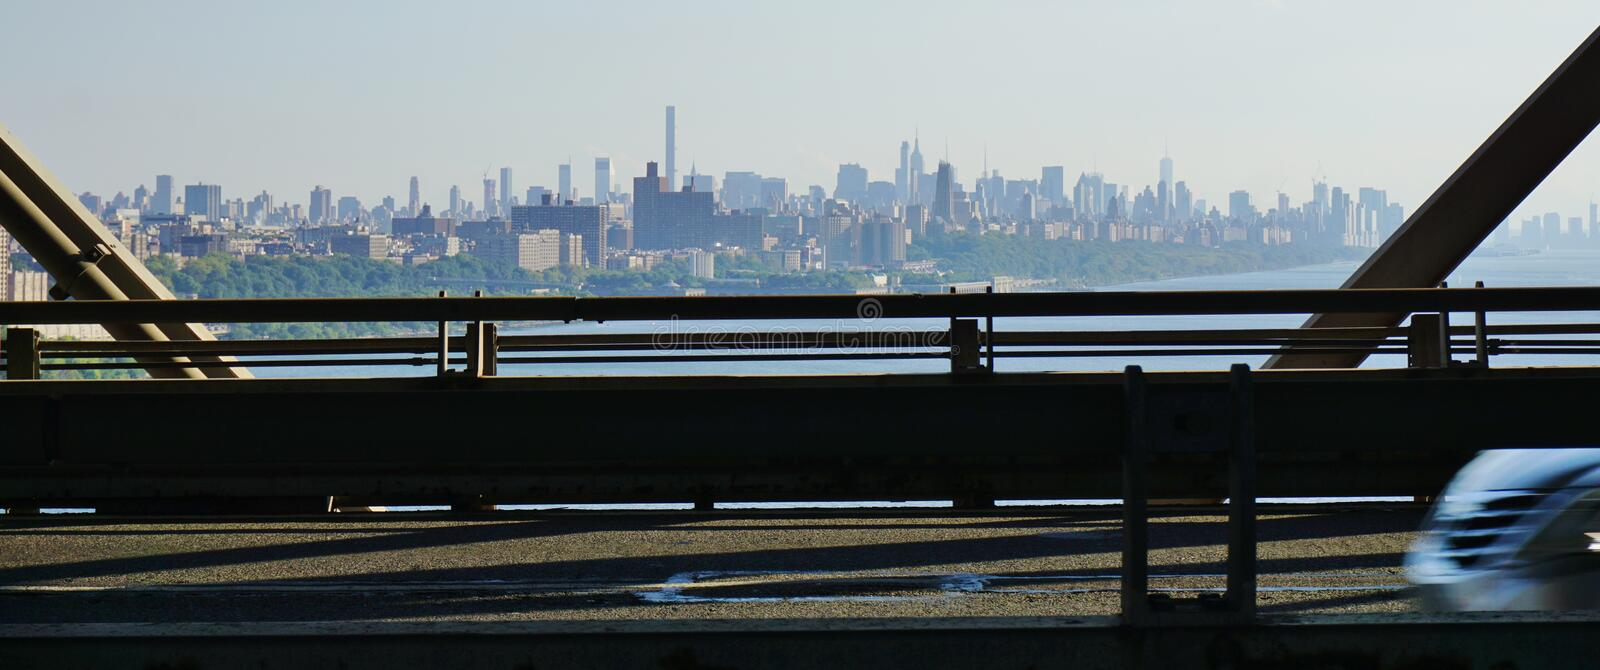 Szenische Ansicht der Skyline New York Manhattan gesehen vom George Washington Bridge (GWB) stockfotos